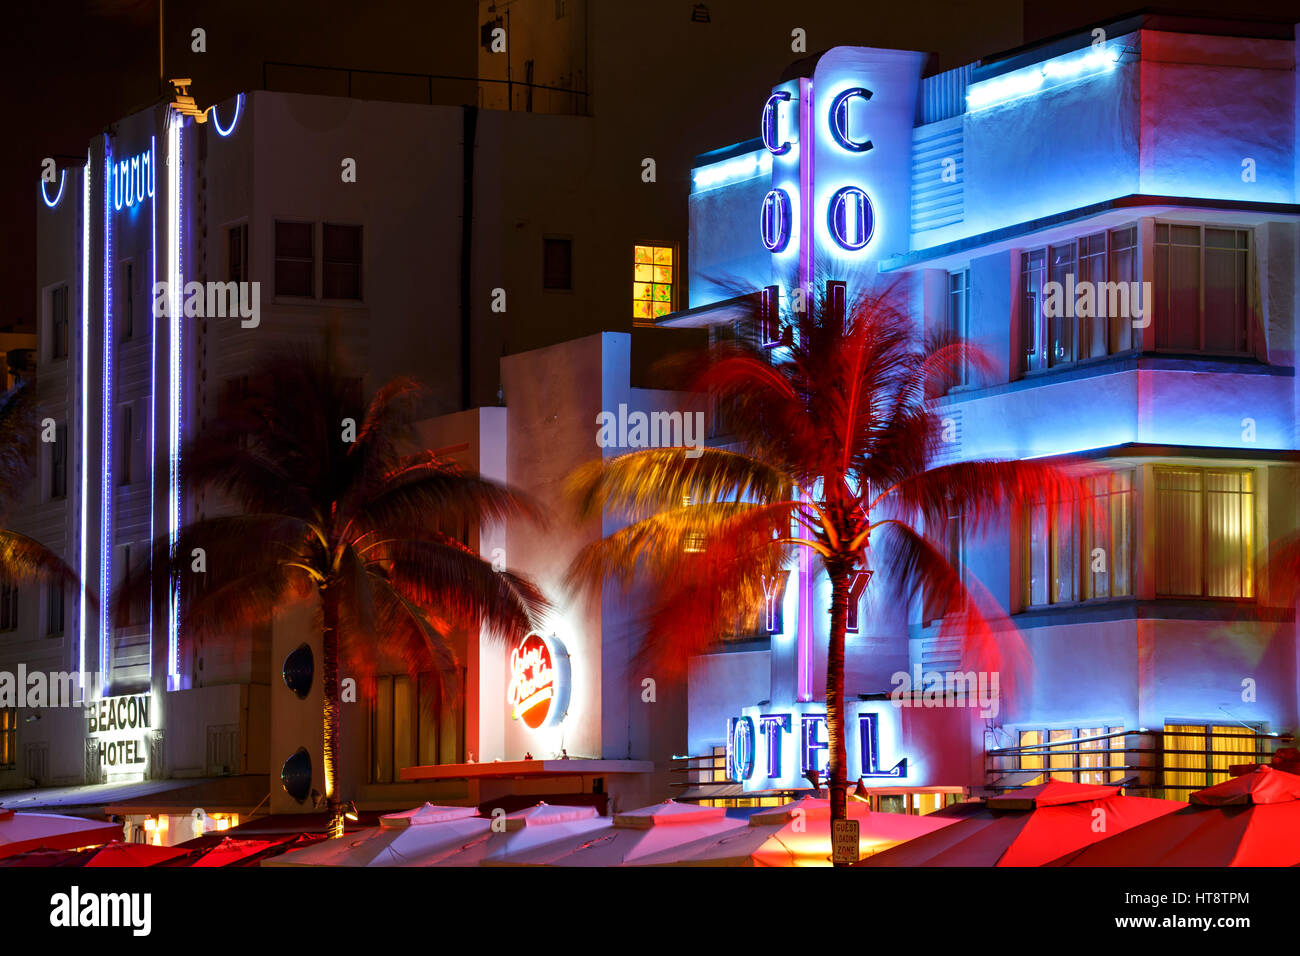 Colony Hotel, South Beach, Miami Beach, Florida - Stock Image